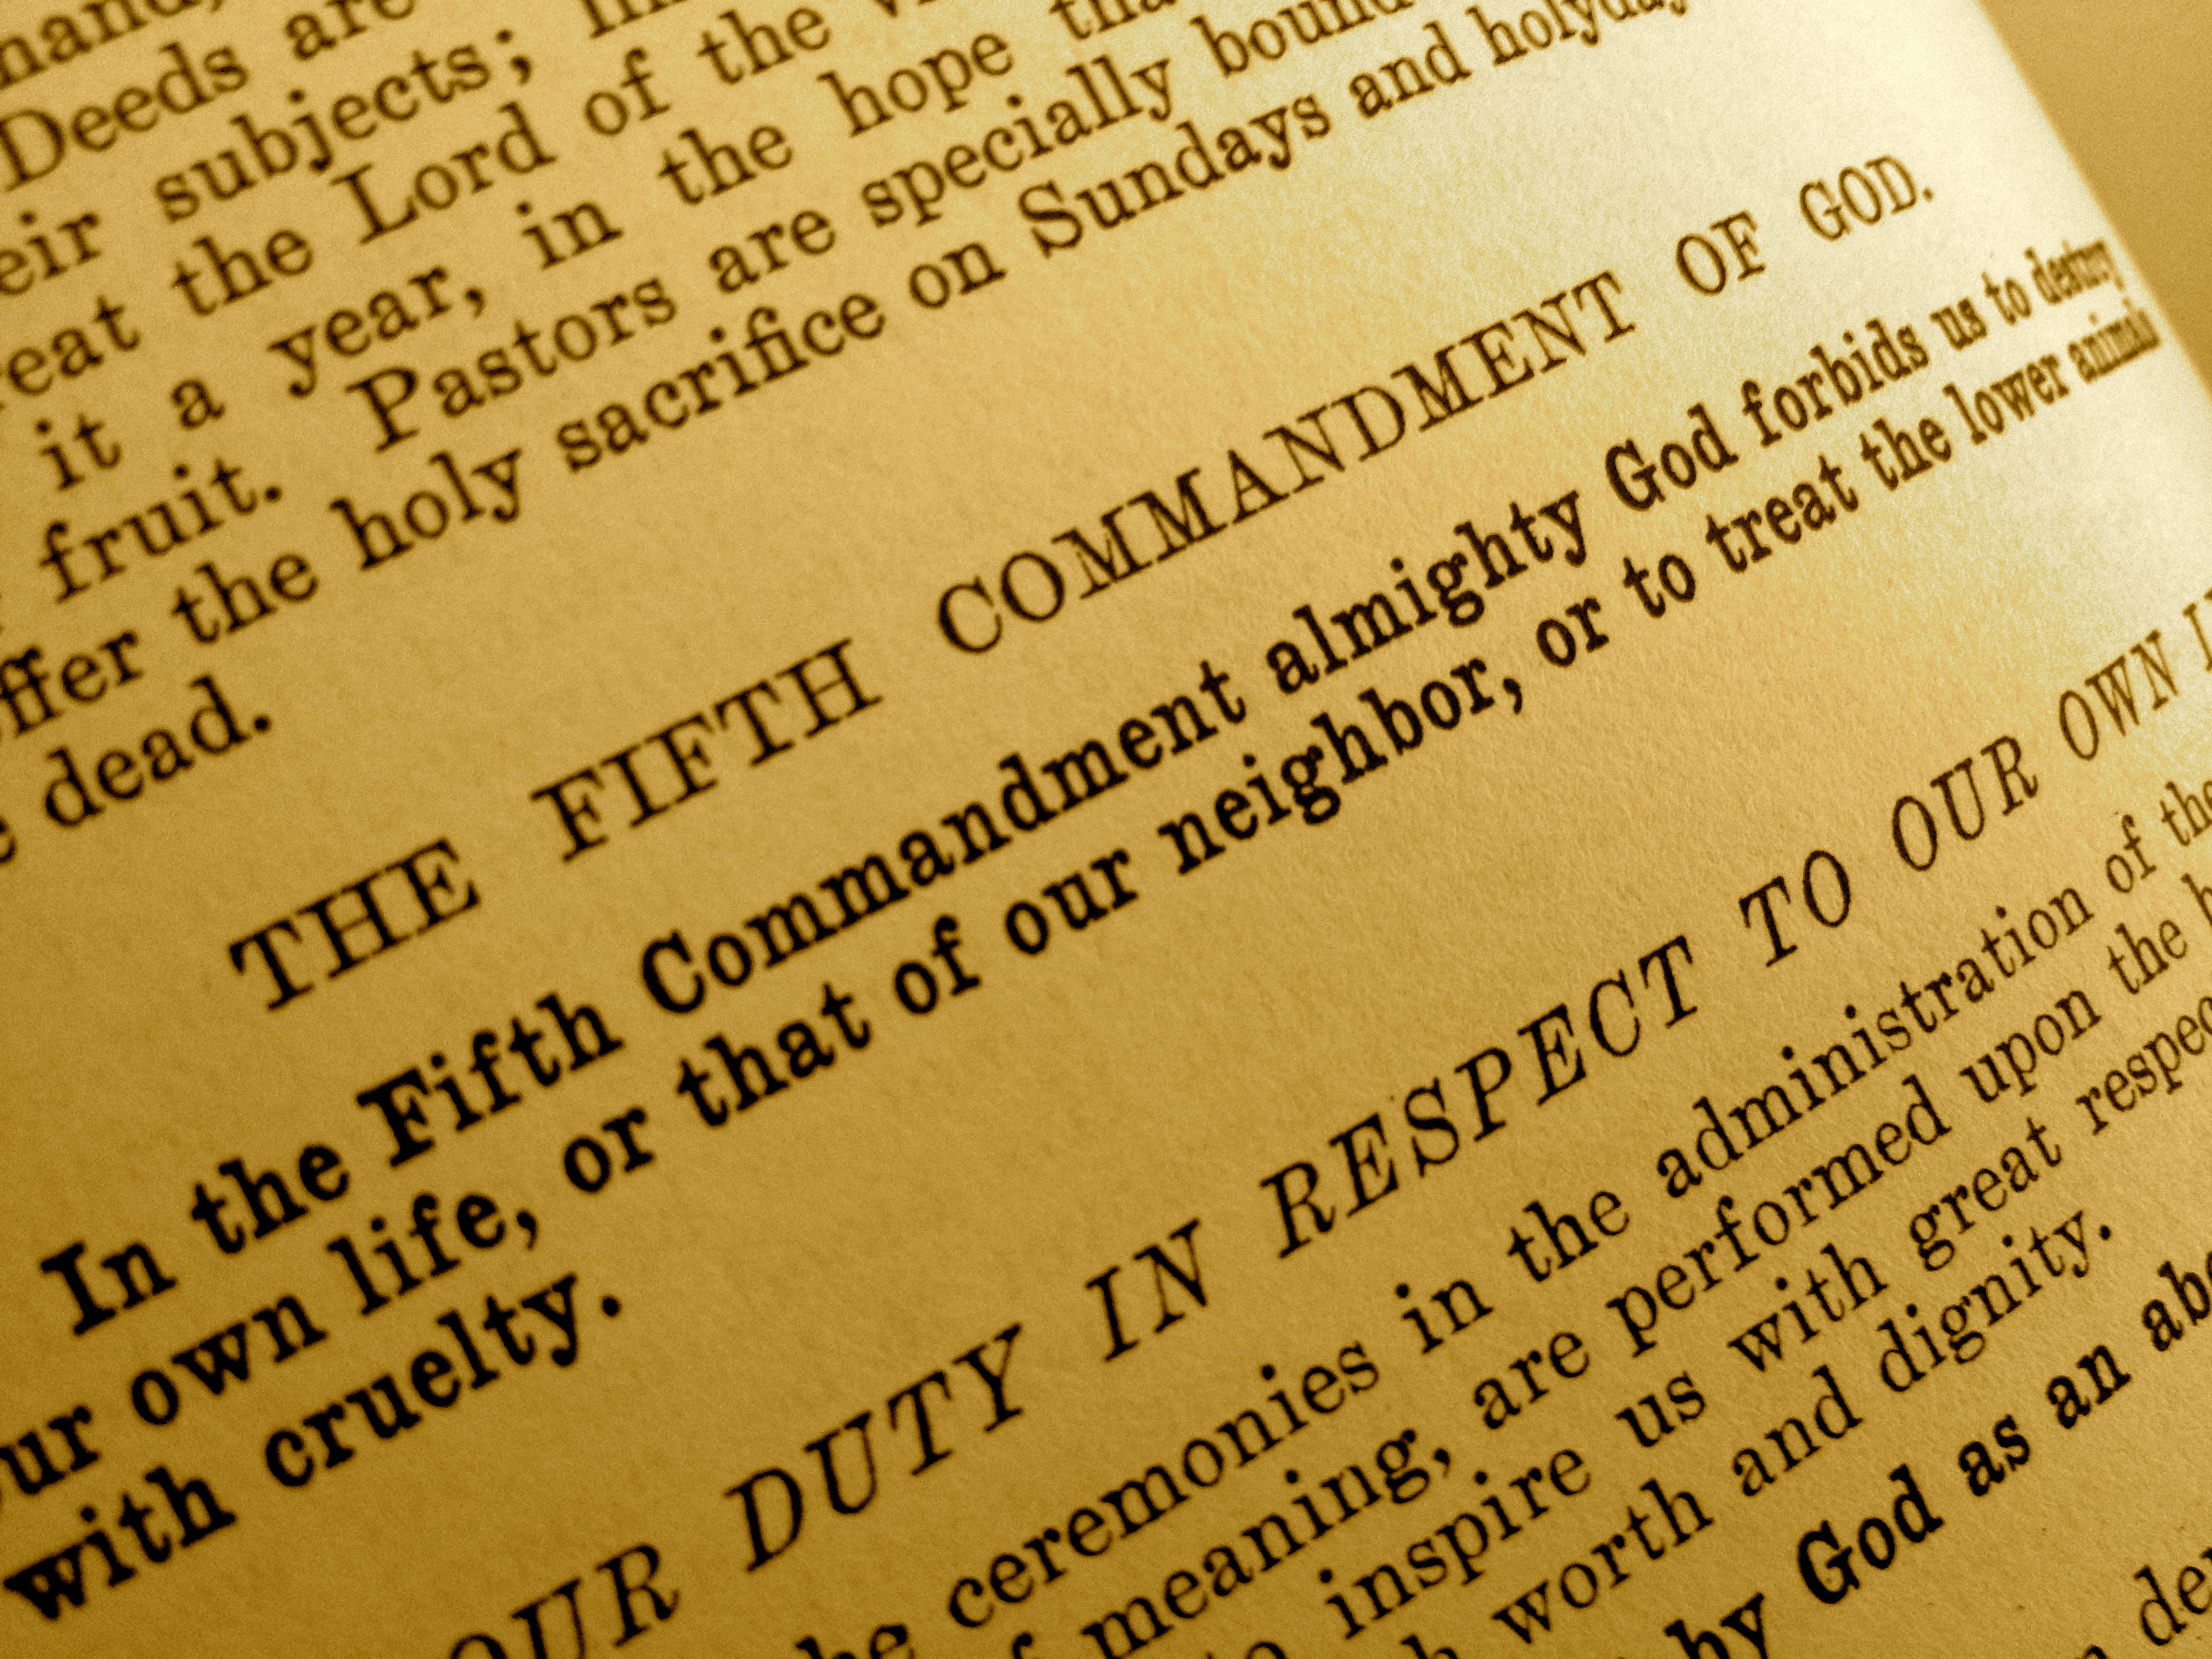 The Fifth Commandment appears in text